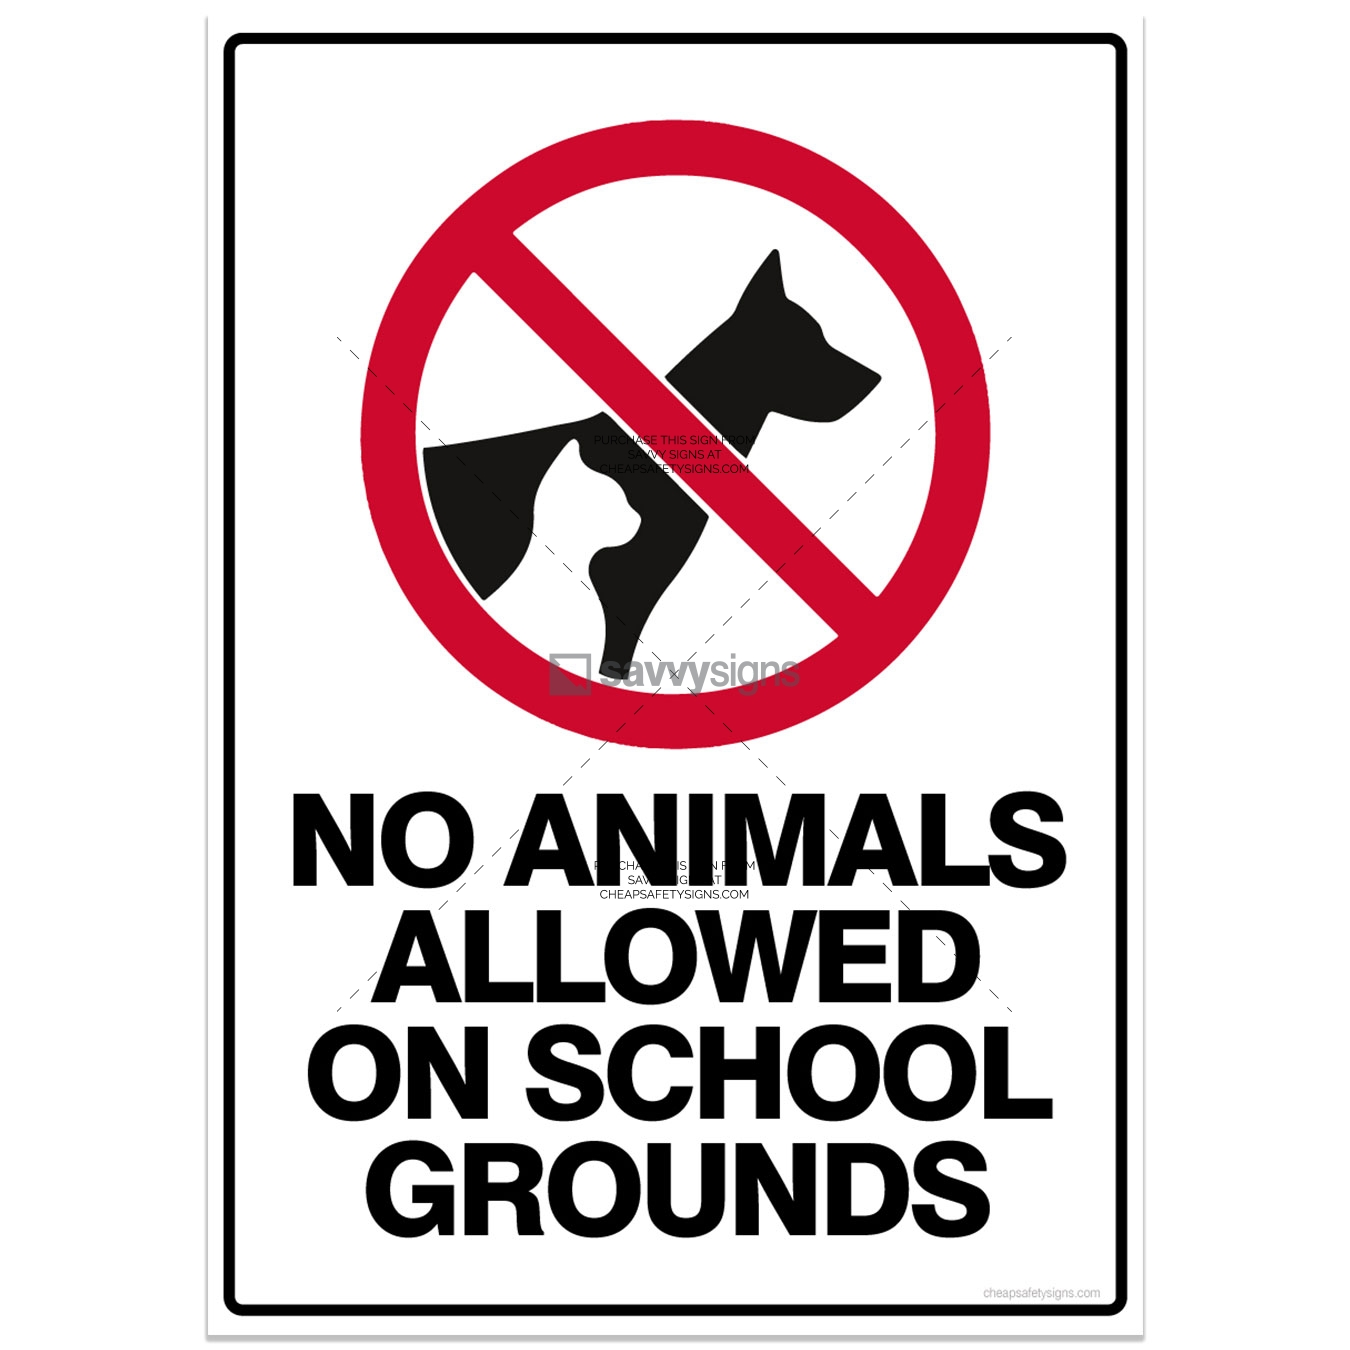 SSPRO3020-PROHIBITION-Workplace-Safety-Signs_Savvy-Signs_v2